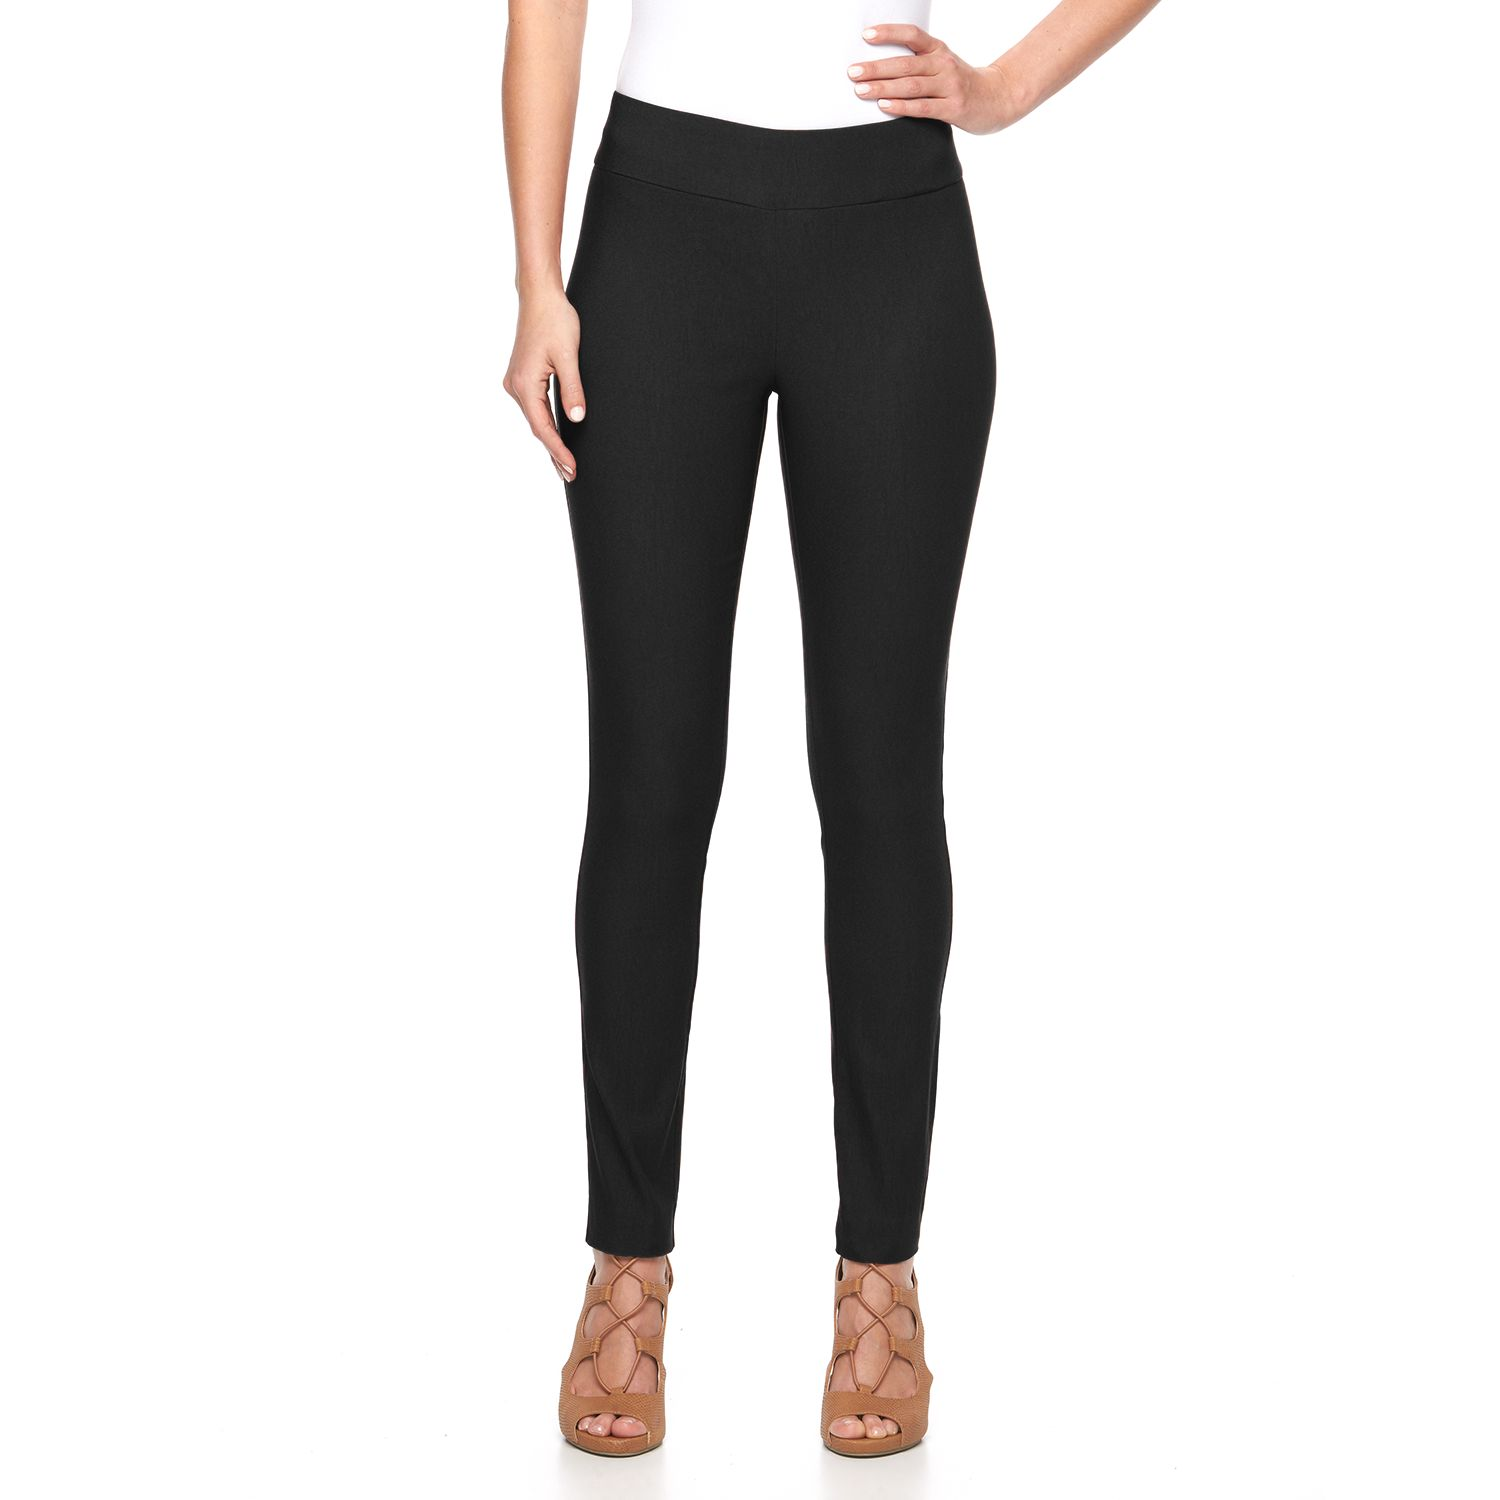 Skinny Black Dress Pants zHv6gWPS